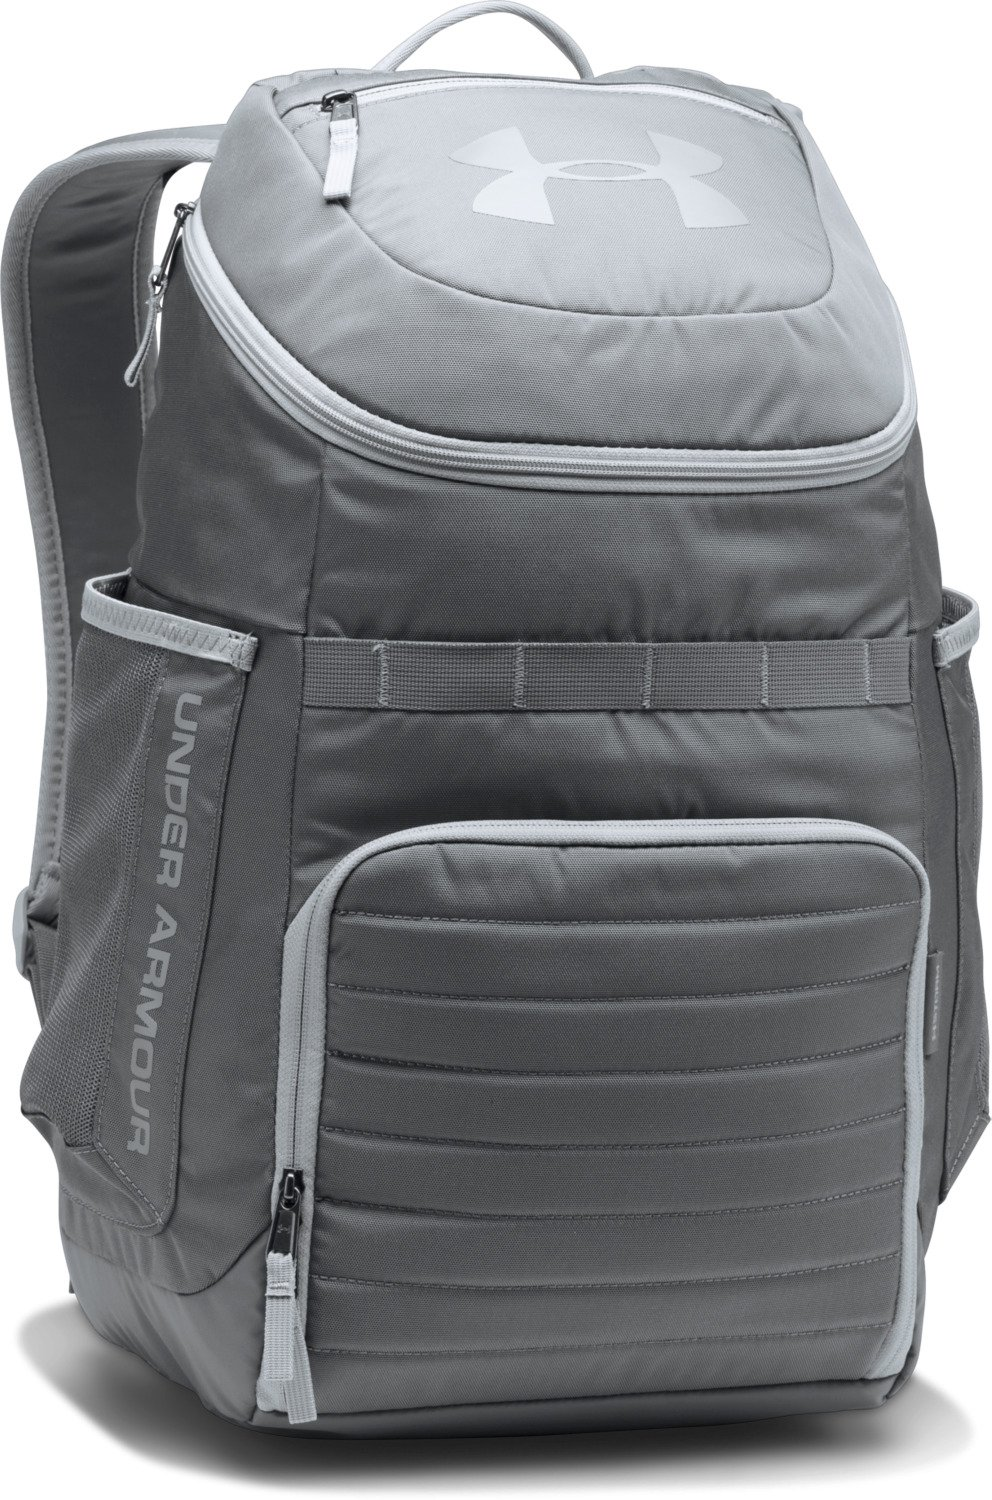 44aecd0936 Under Armour VX2-Undeniable Backpack